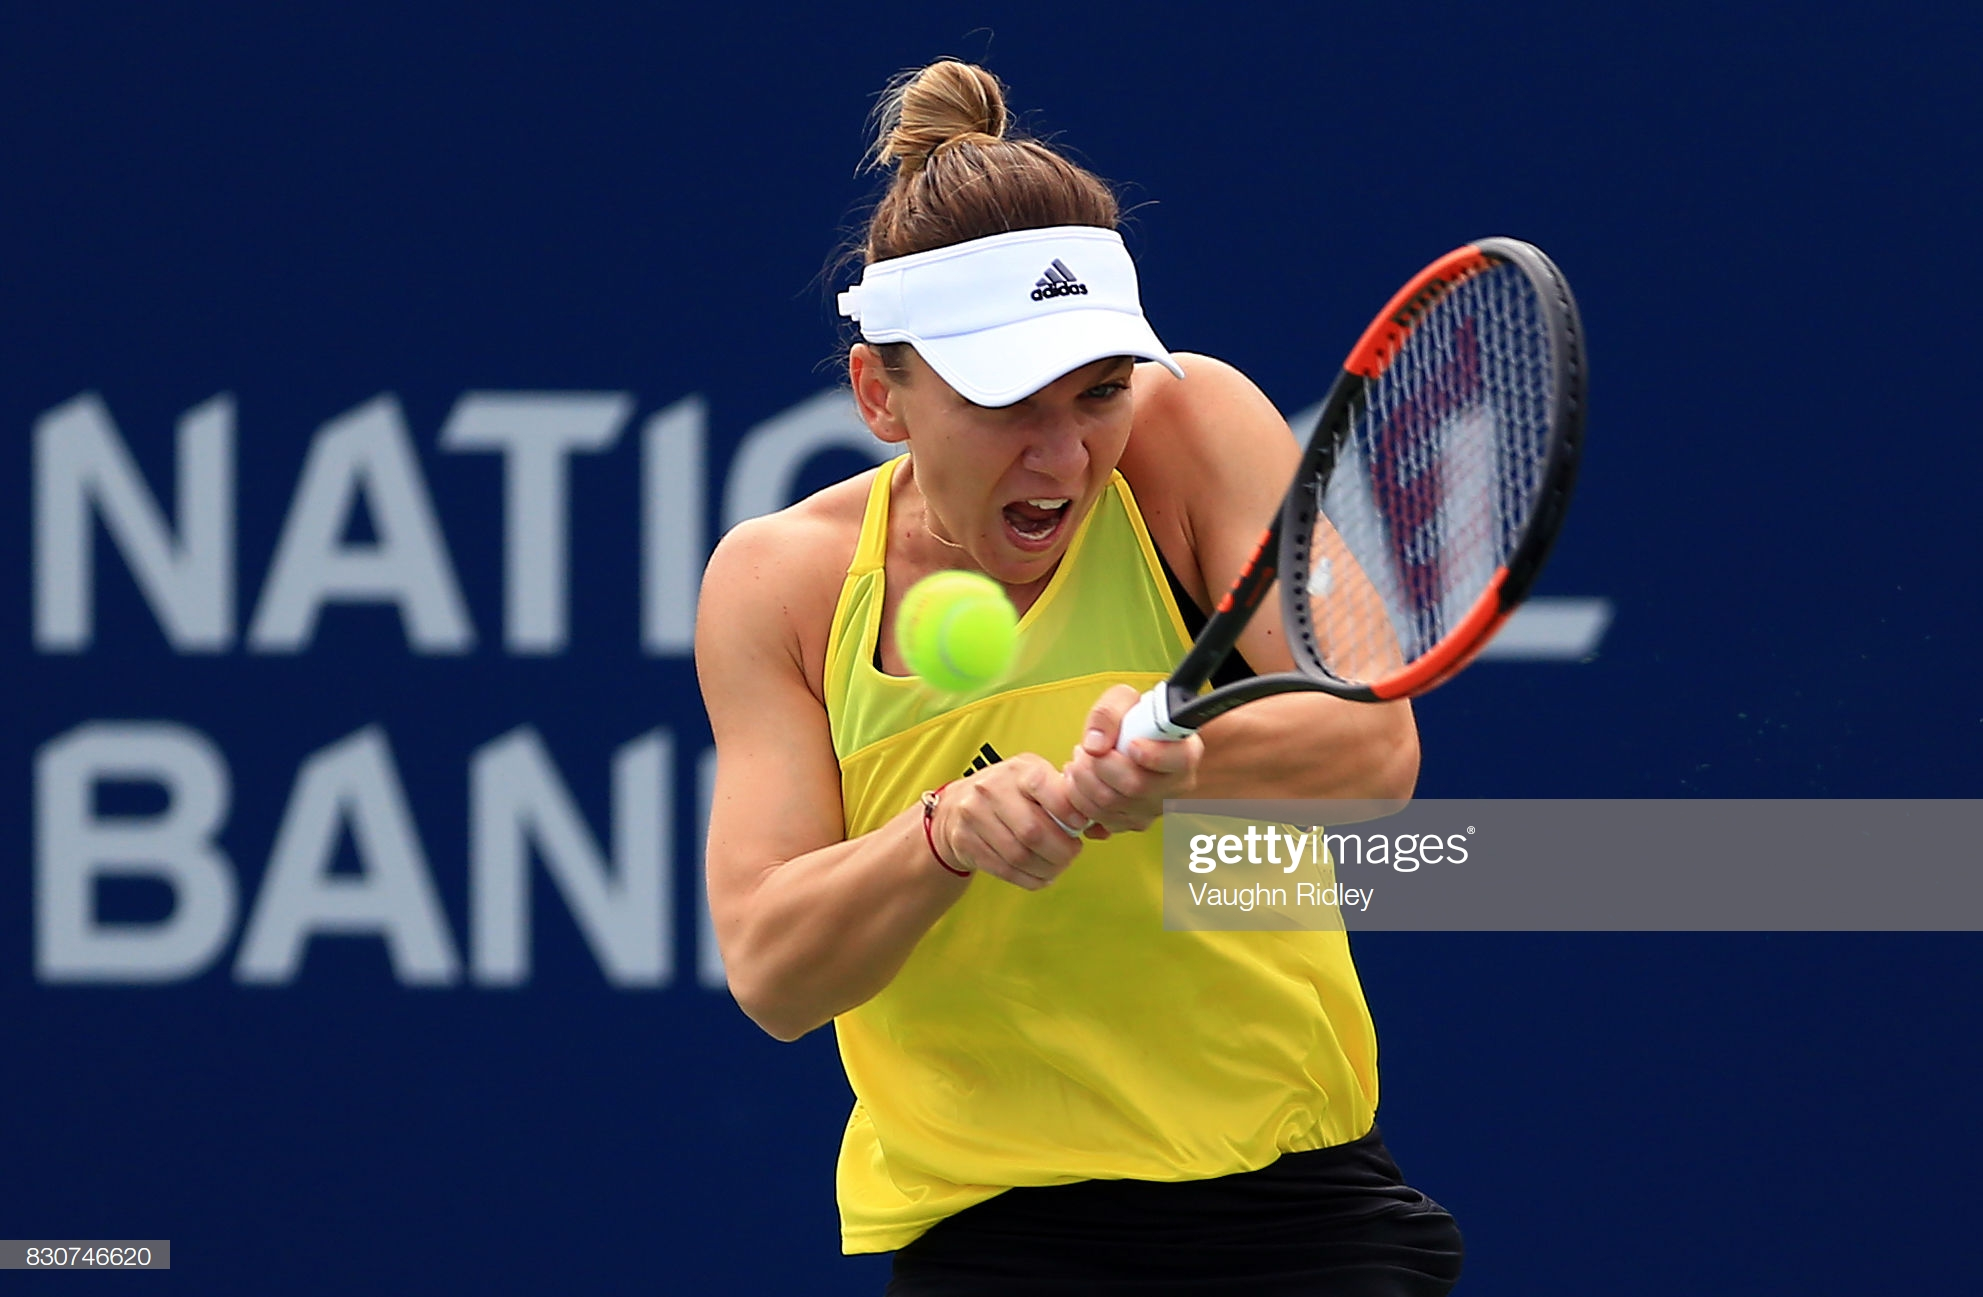 TORONTO, ON - AUGUST 12: Simona Halep of Romania plays a shot against Caroline Garcia of France during a quarterfinal match on Day 8 of the Rogers Cup at Aviva Centre on August 12, 2017 in Toronto, Canada. (Photo by Vaughn Ridley/Getty Images)